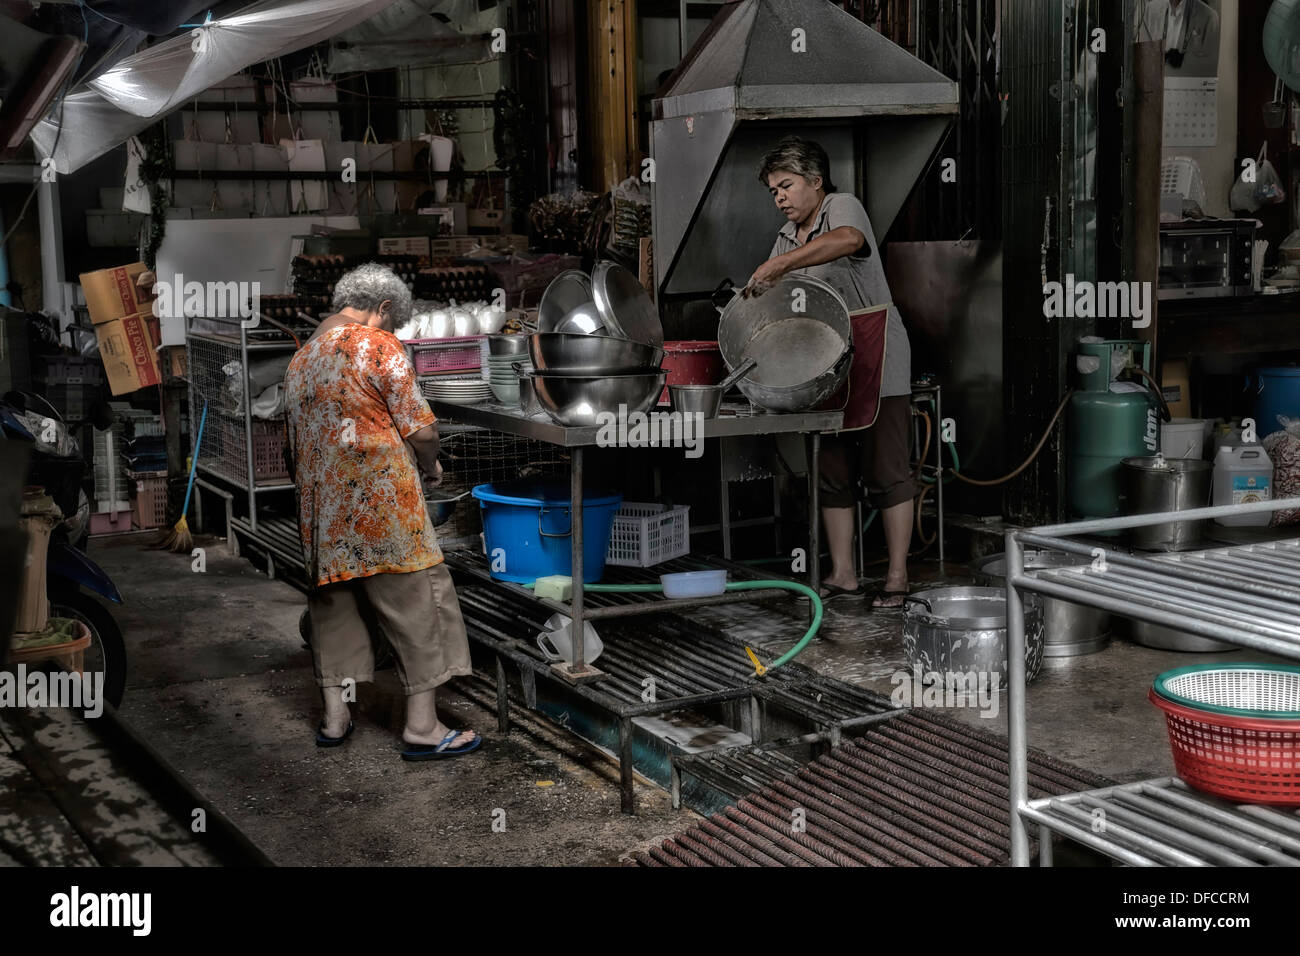 Thailand back street scene of Thai woman washing pots and pans. Thailand S. E. Asia - Stock Image